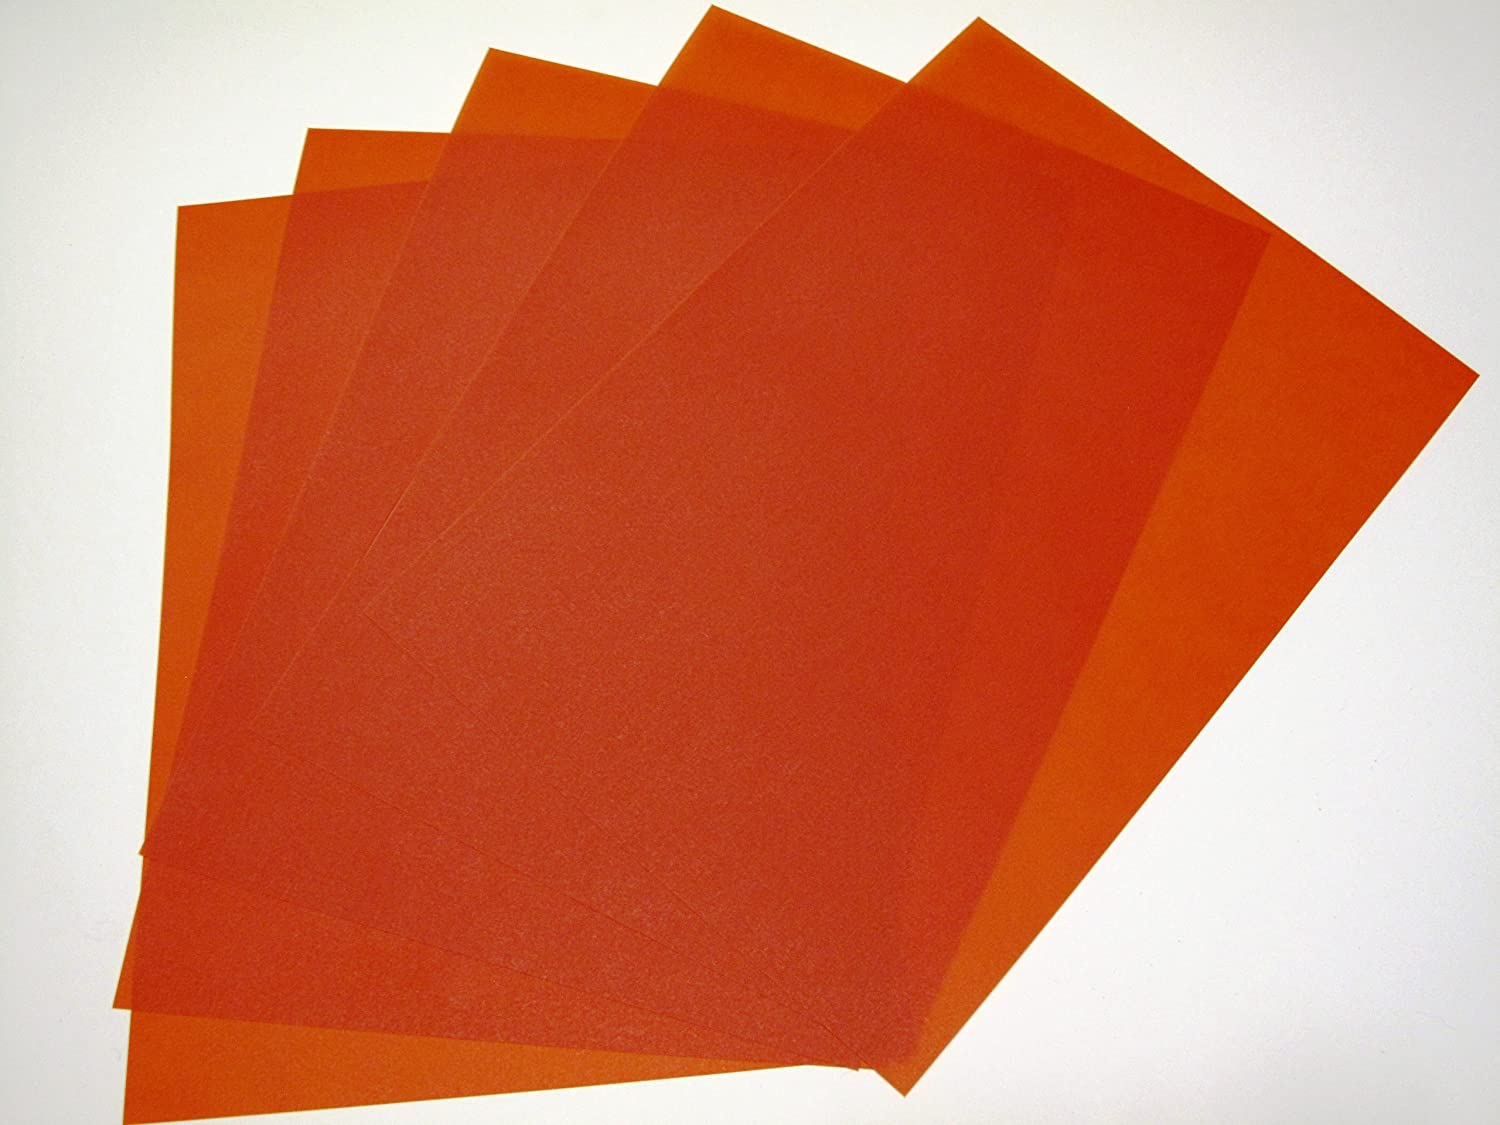 10 x A4 200gsm Red Translucent Vellum Paper Suitable for use with Laser & Inkjet Printers Jackdaw Express